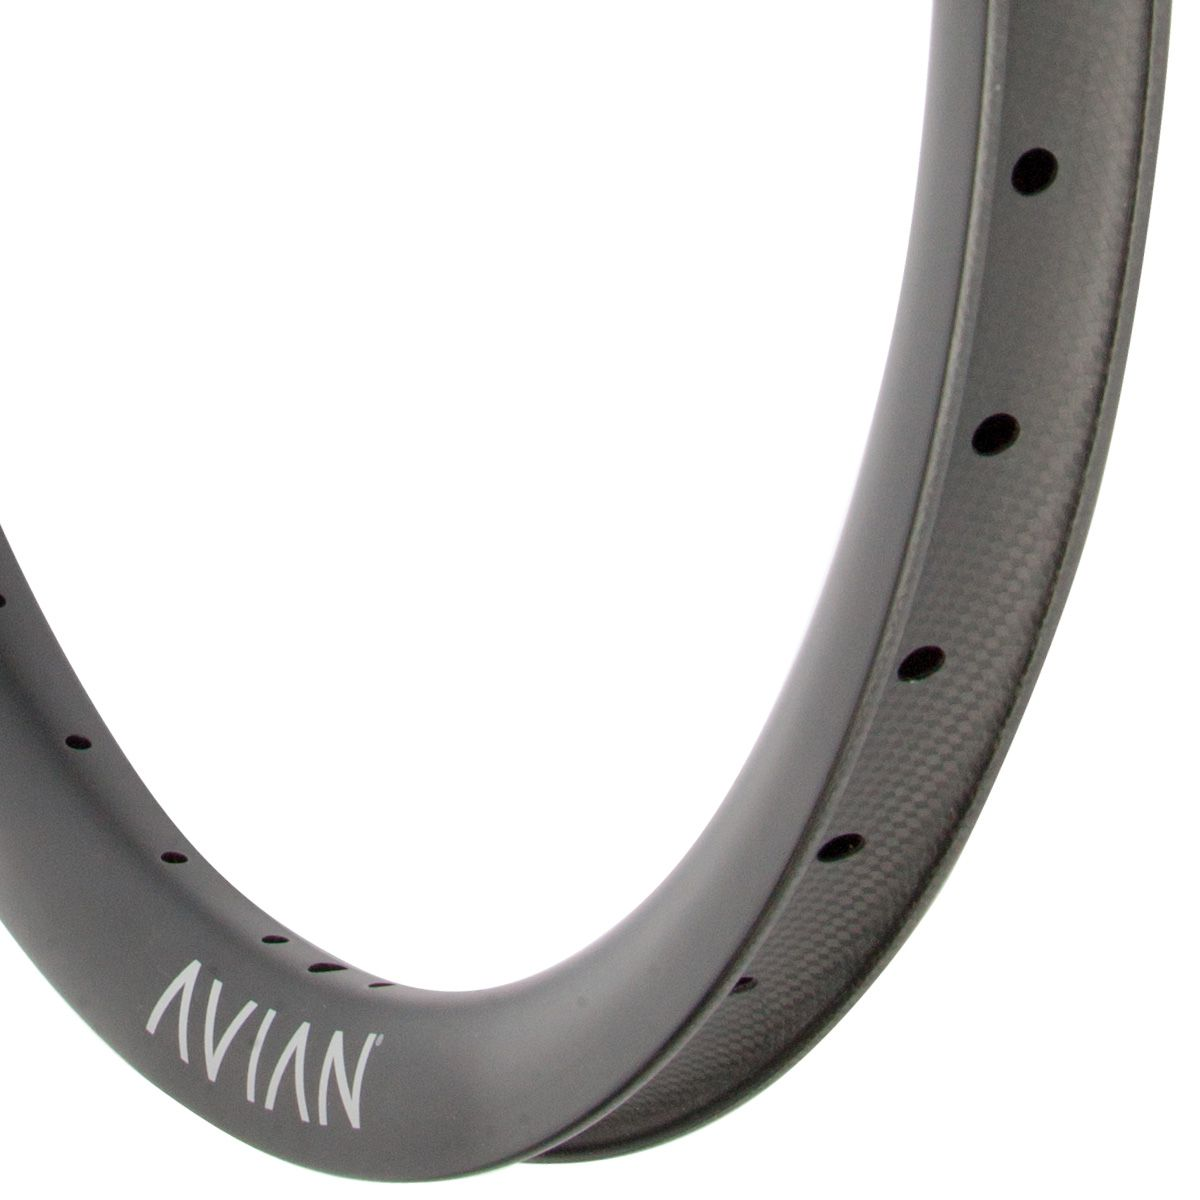 avian-venatic-front-rim-20×1-3-8-28h-mat-black